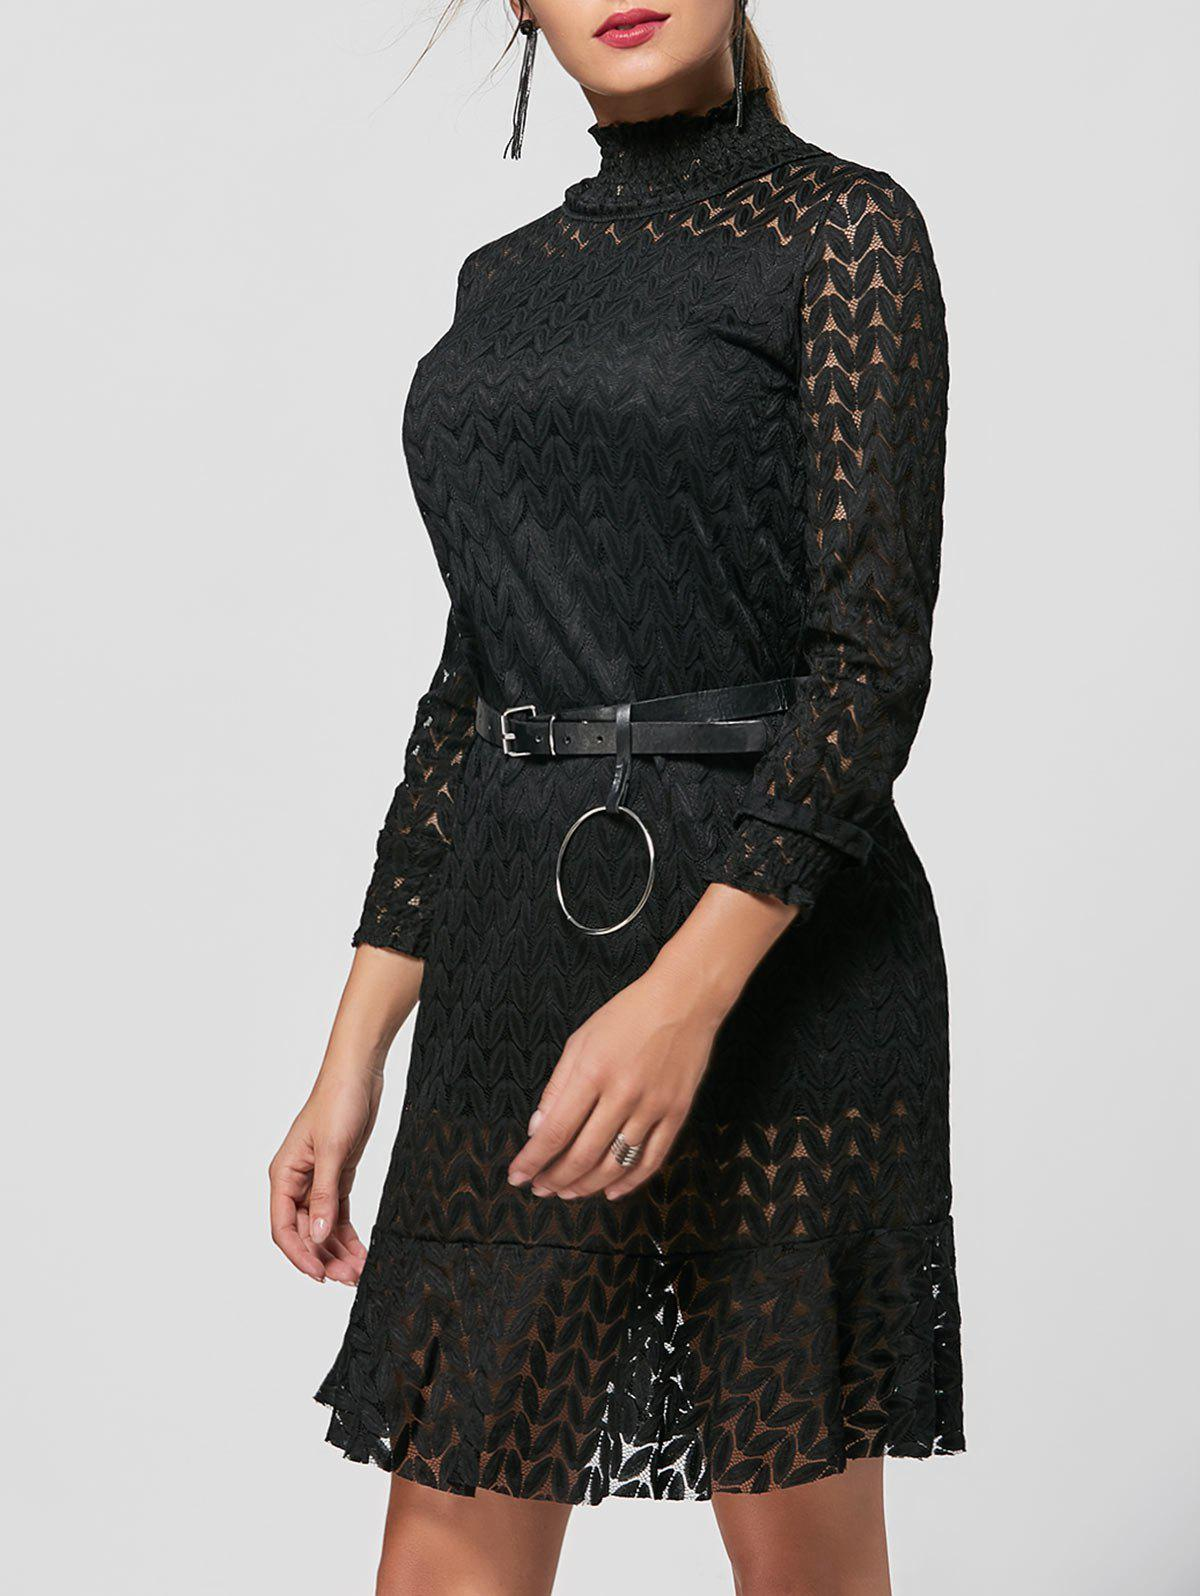 Stand Collar Flounce Shift Lace Dress - Noir XL